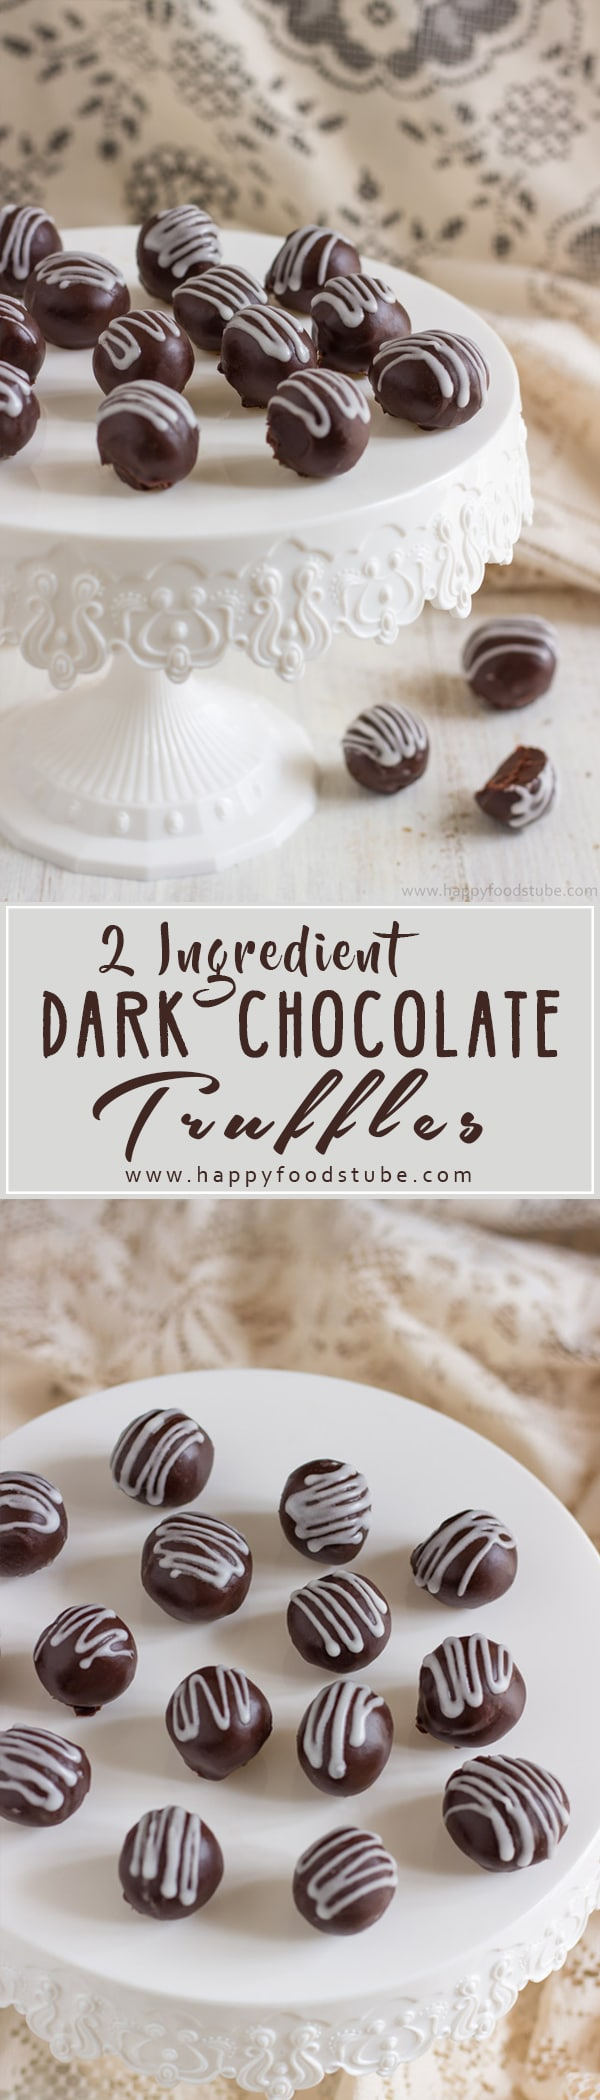 Homemade 2 Ingredient Dark Chocolate Truffles are rich, creamy and so tasty. Make them for Christmas, New Year's Eve party or gift them